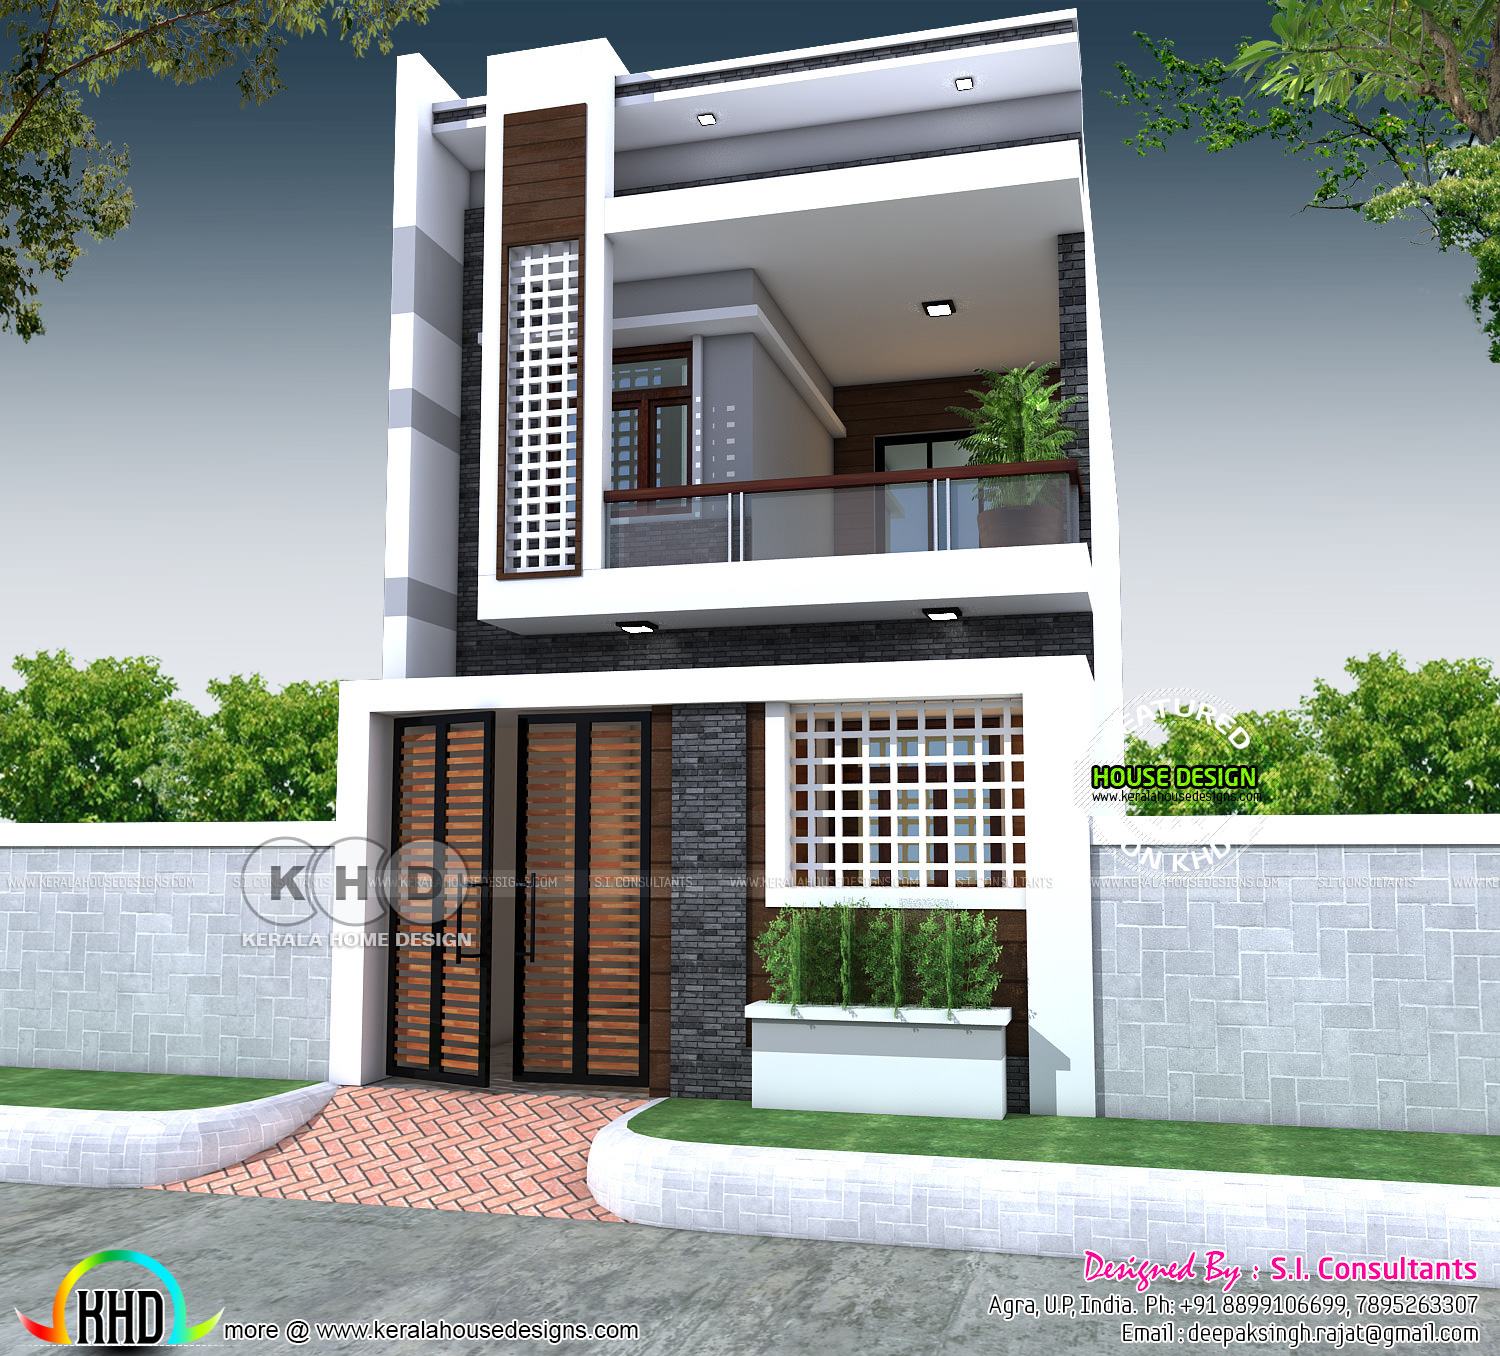 20'x55' North Indian home in Modern style | Kerala home ... on 4800 sq ft house plans, 1000 sq ft house plans, 500 sq ft house plans, 4000 sq ft house plans, 1800 sq ft house plans, 1300 sq ft house plans, 1150 sq ft house plans, 1148 sq ft house plans, 720 sq ft house plans, 600 sq ft house plans, 10000 sq ft house plans, 832 sq ft house plans, 300 sq ft house plans, 400 sq ft house plans, 1200 sq ft house plans, 900 sq ft house plans, 1035 sq ft house plans, 3100 sq ft house plans, 30000 sq ft house plans, 200 sq ft house plans,